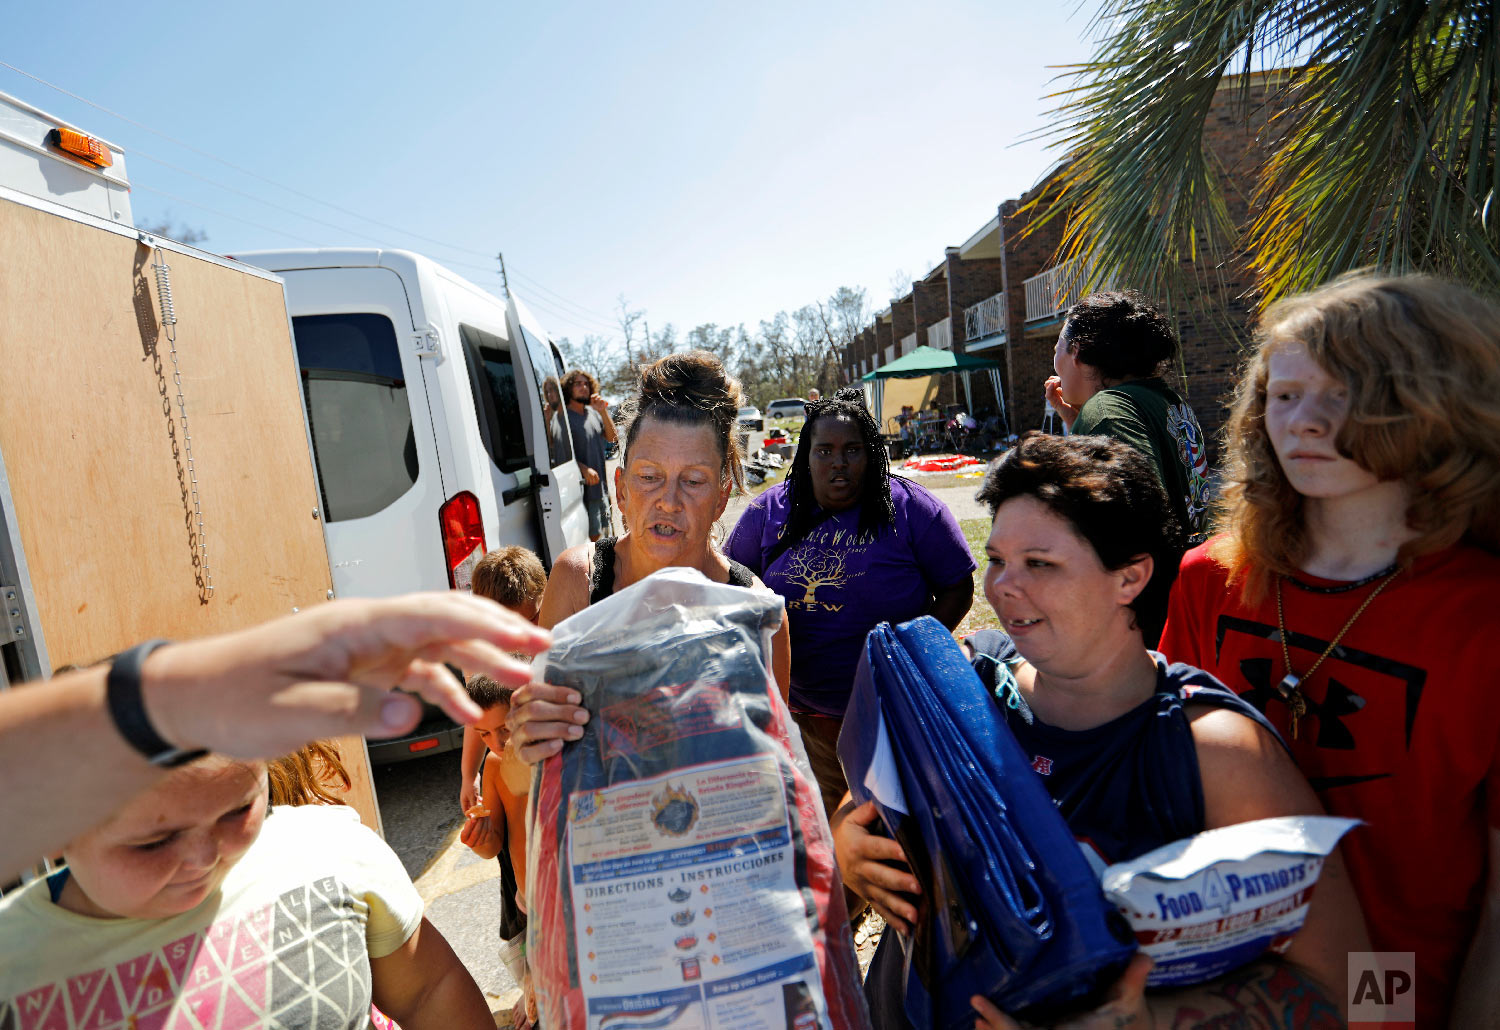 Charcoal, tarps and baby supplies are distributed outside the damaged American Quality Lodge where residents continue to live in the aftermath of Hurricane Michael, in Panama City, Fla., Oct. 16, 2018. (AP Photo/David Goldman)